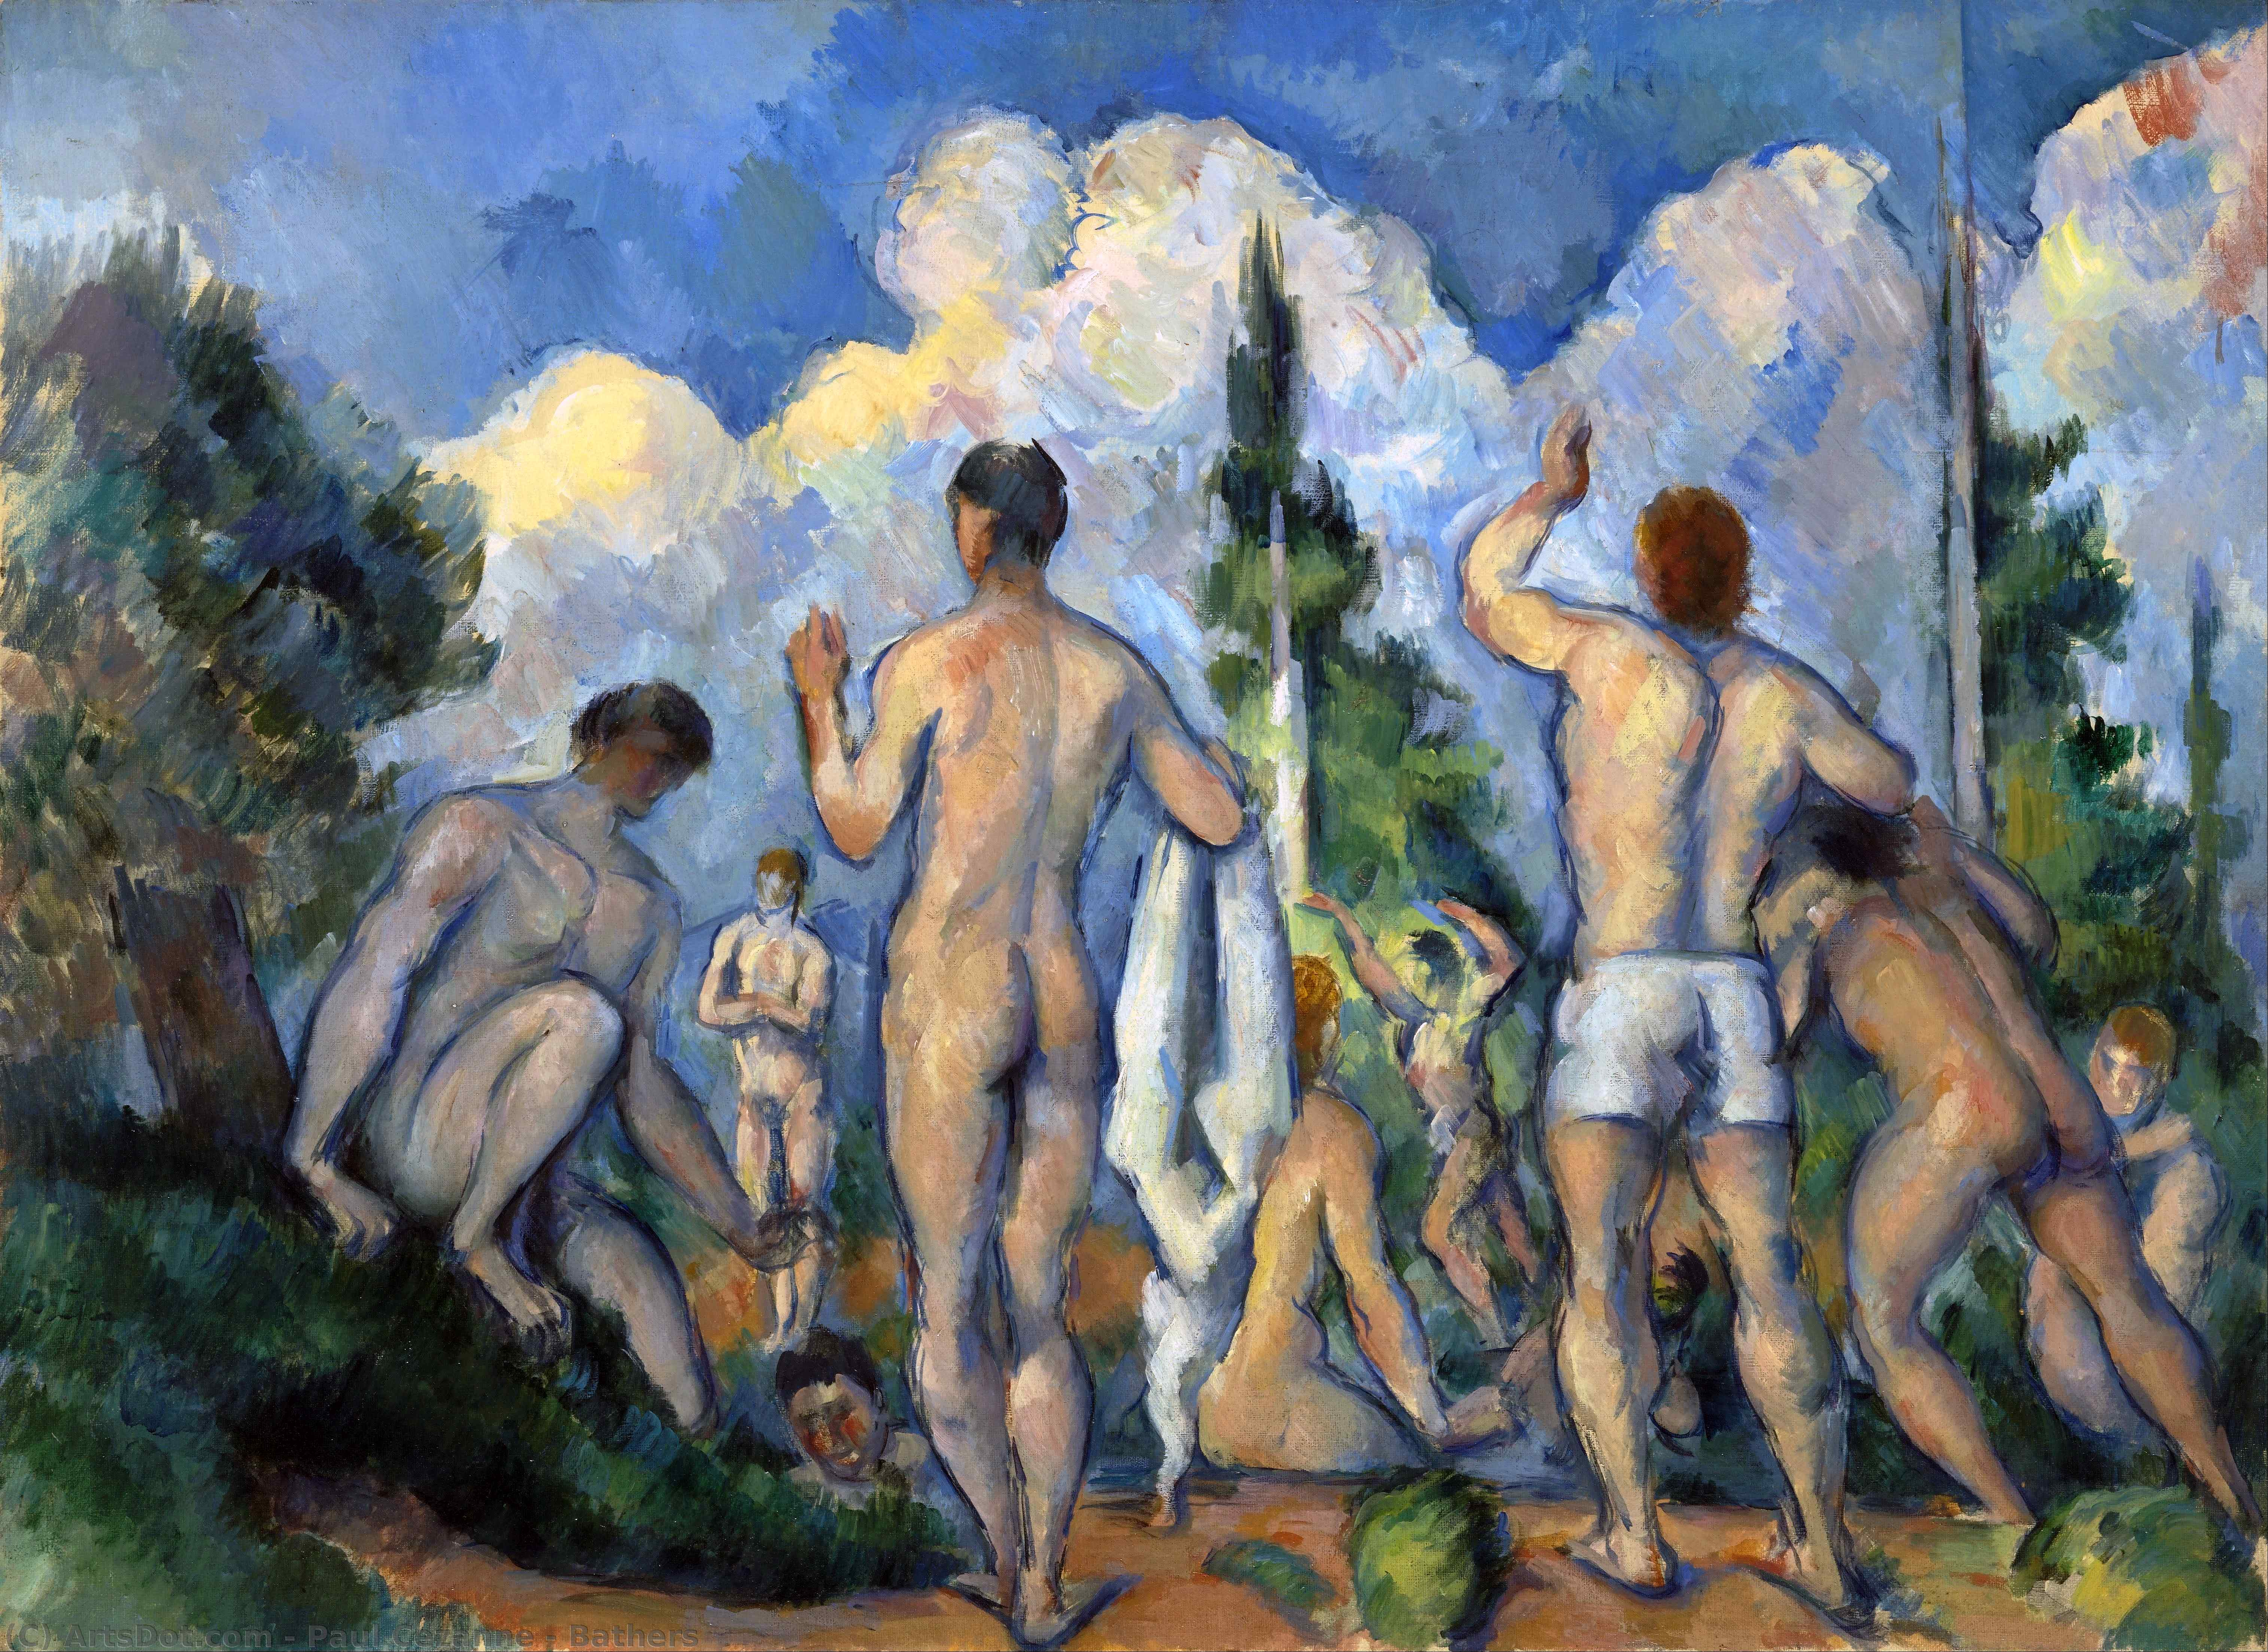 Wikioo.org - The Encyclopedia of Fine Arts - Painting, Artwork by Paul Cezanne - Bathers